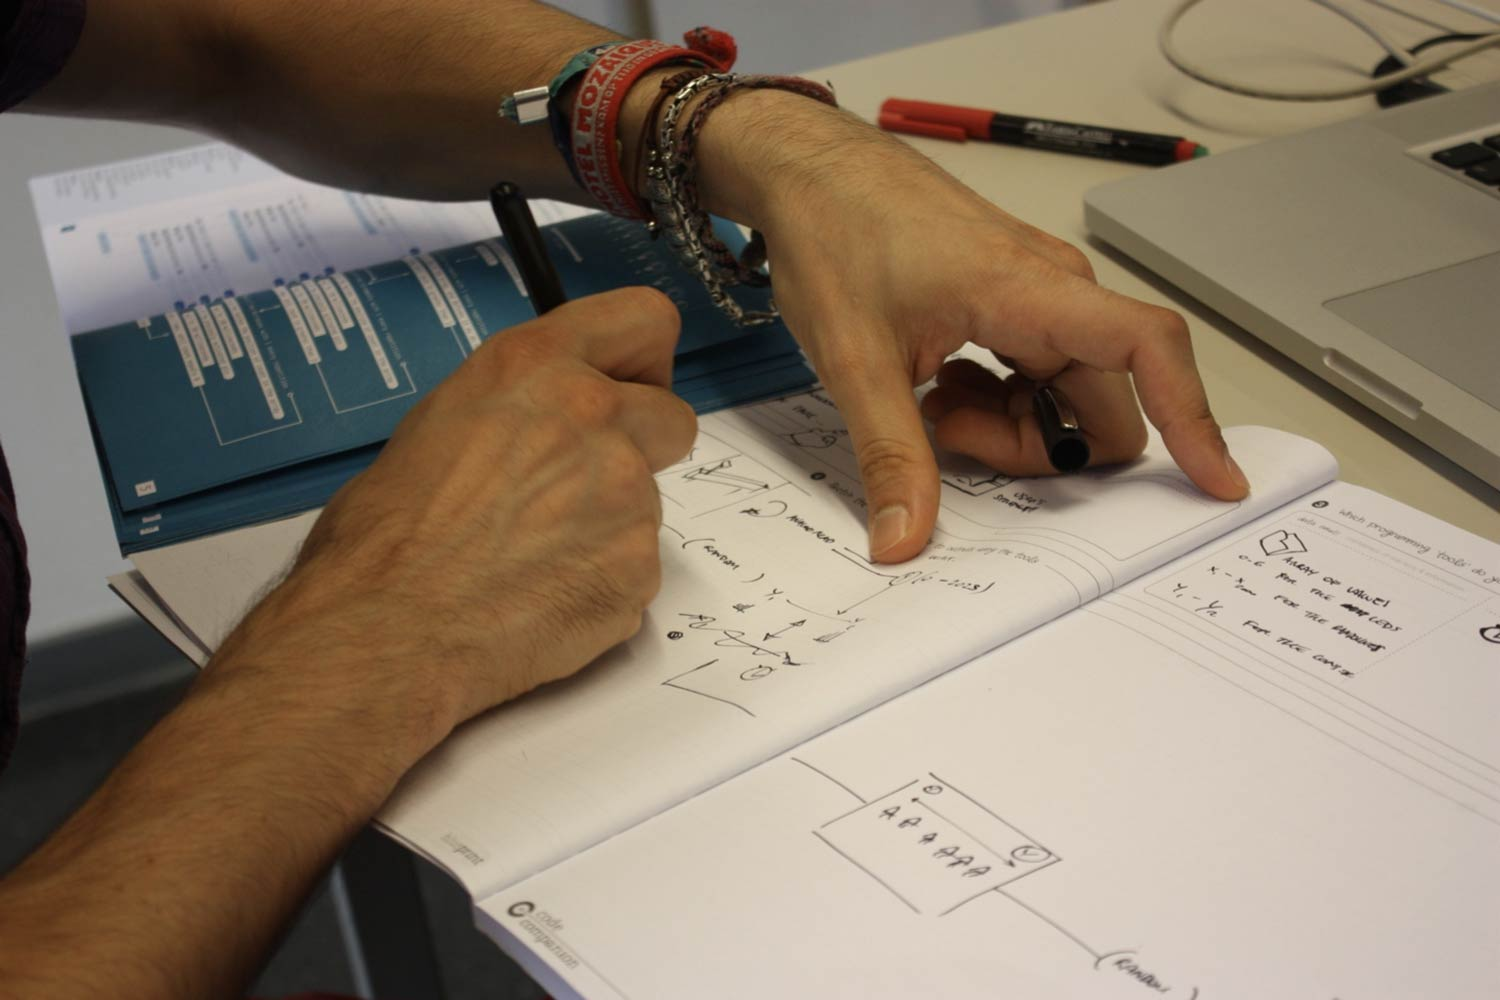 A designer using the Blueprint and Pattern Dictionary